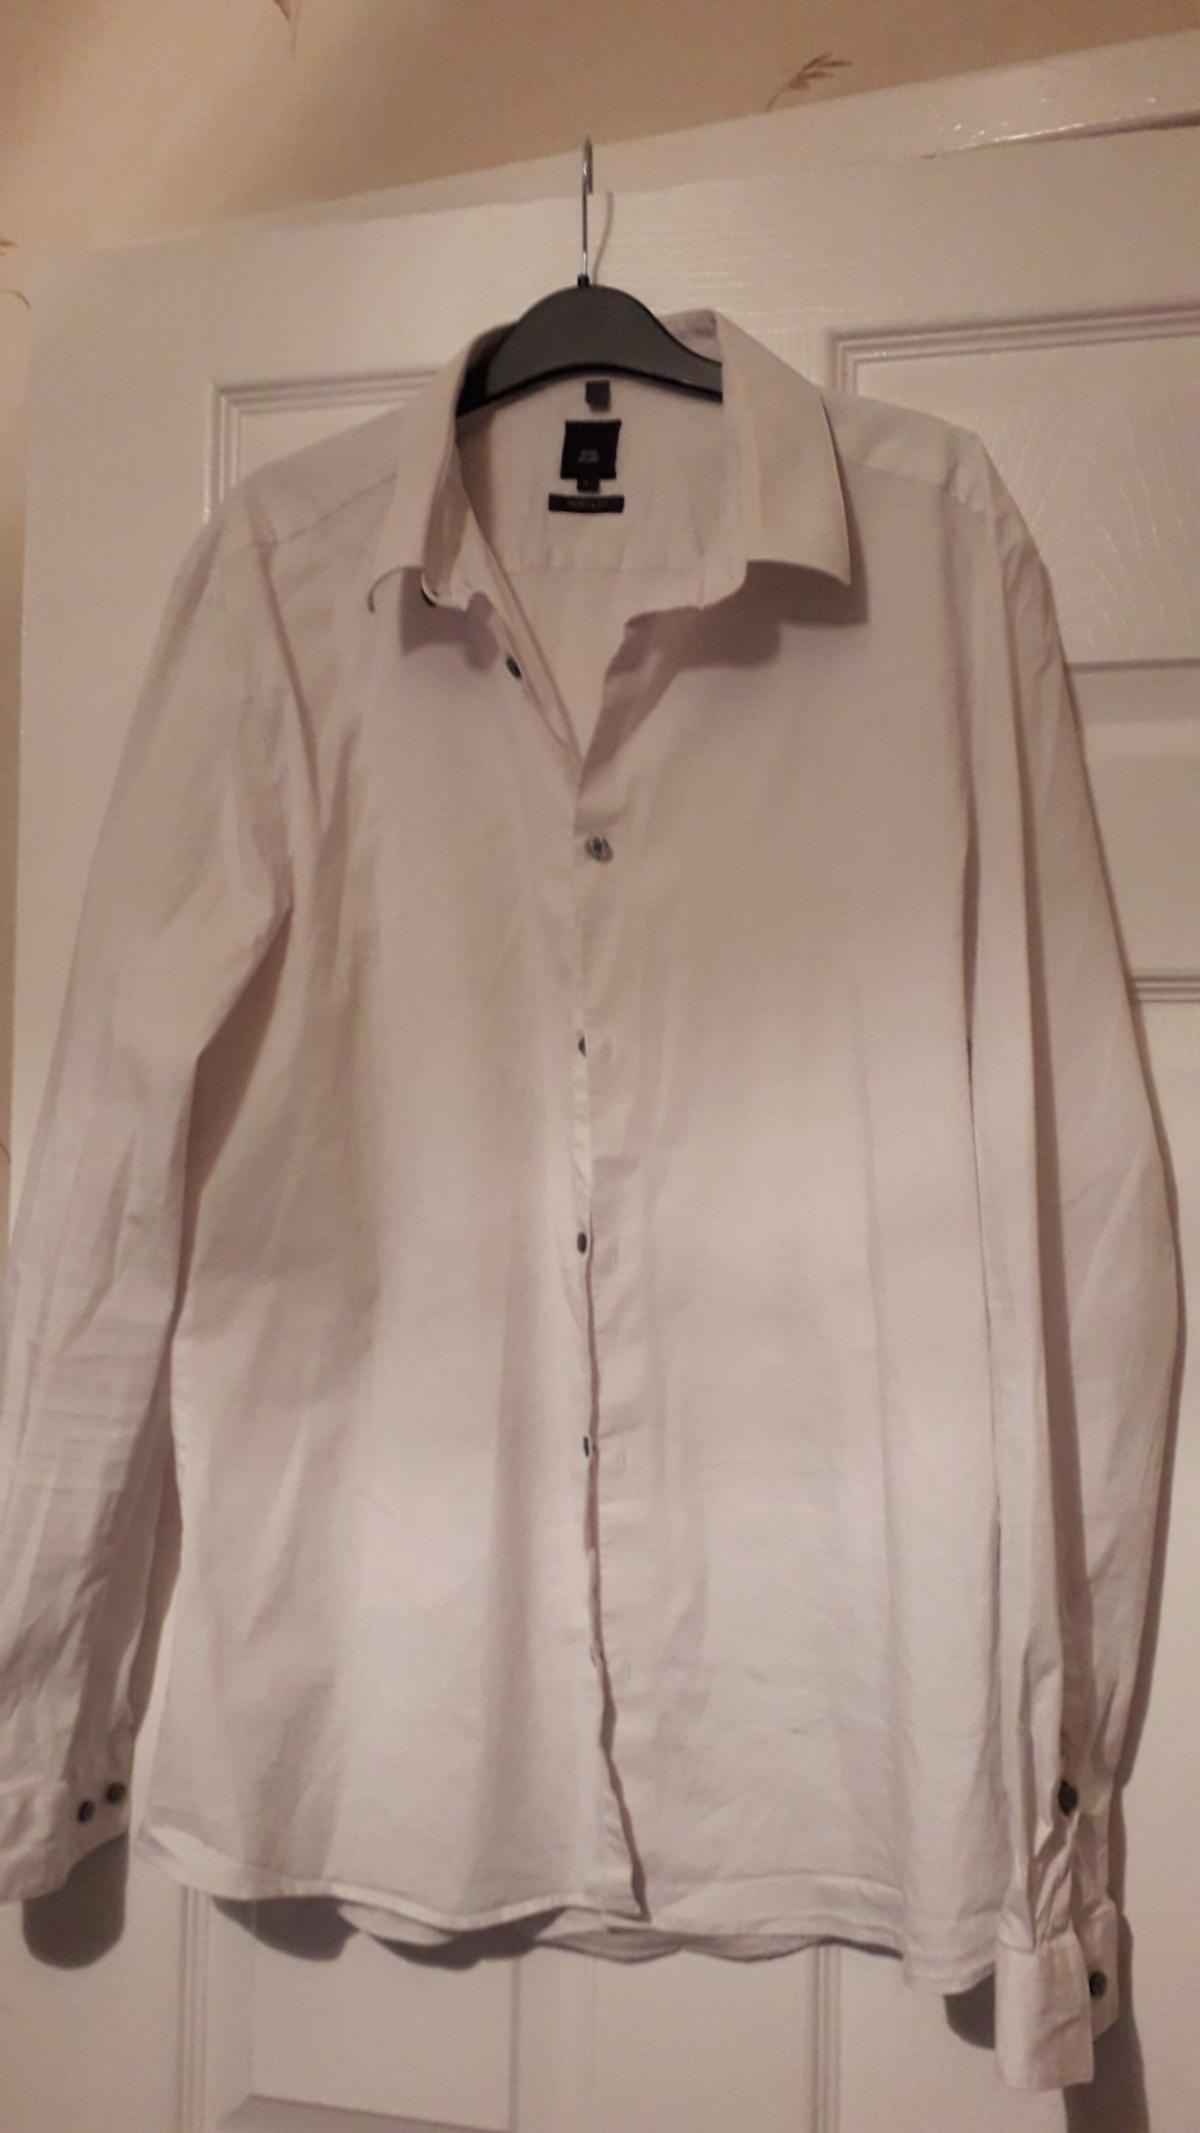 size large from river island